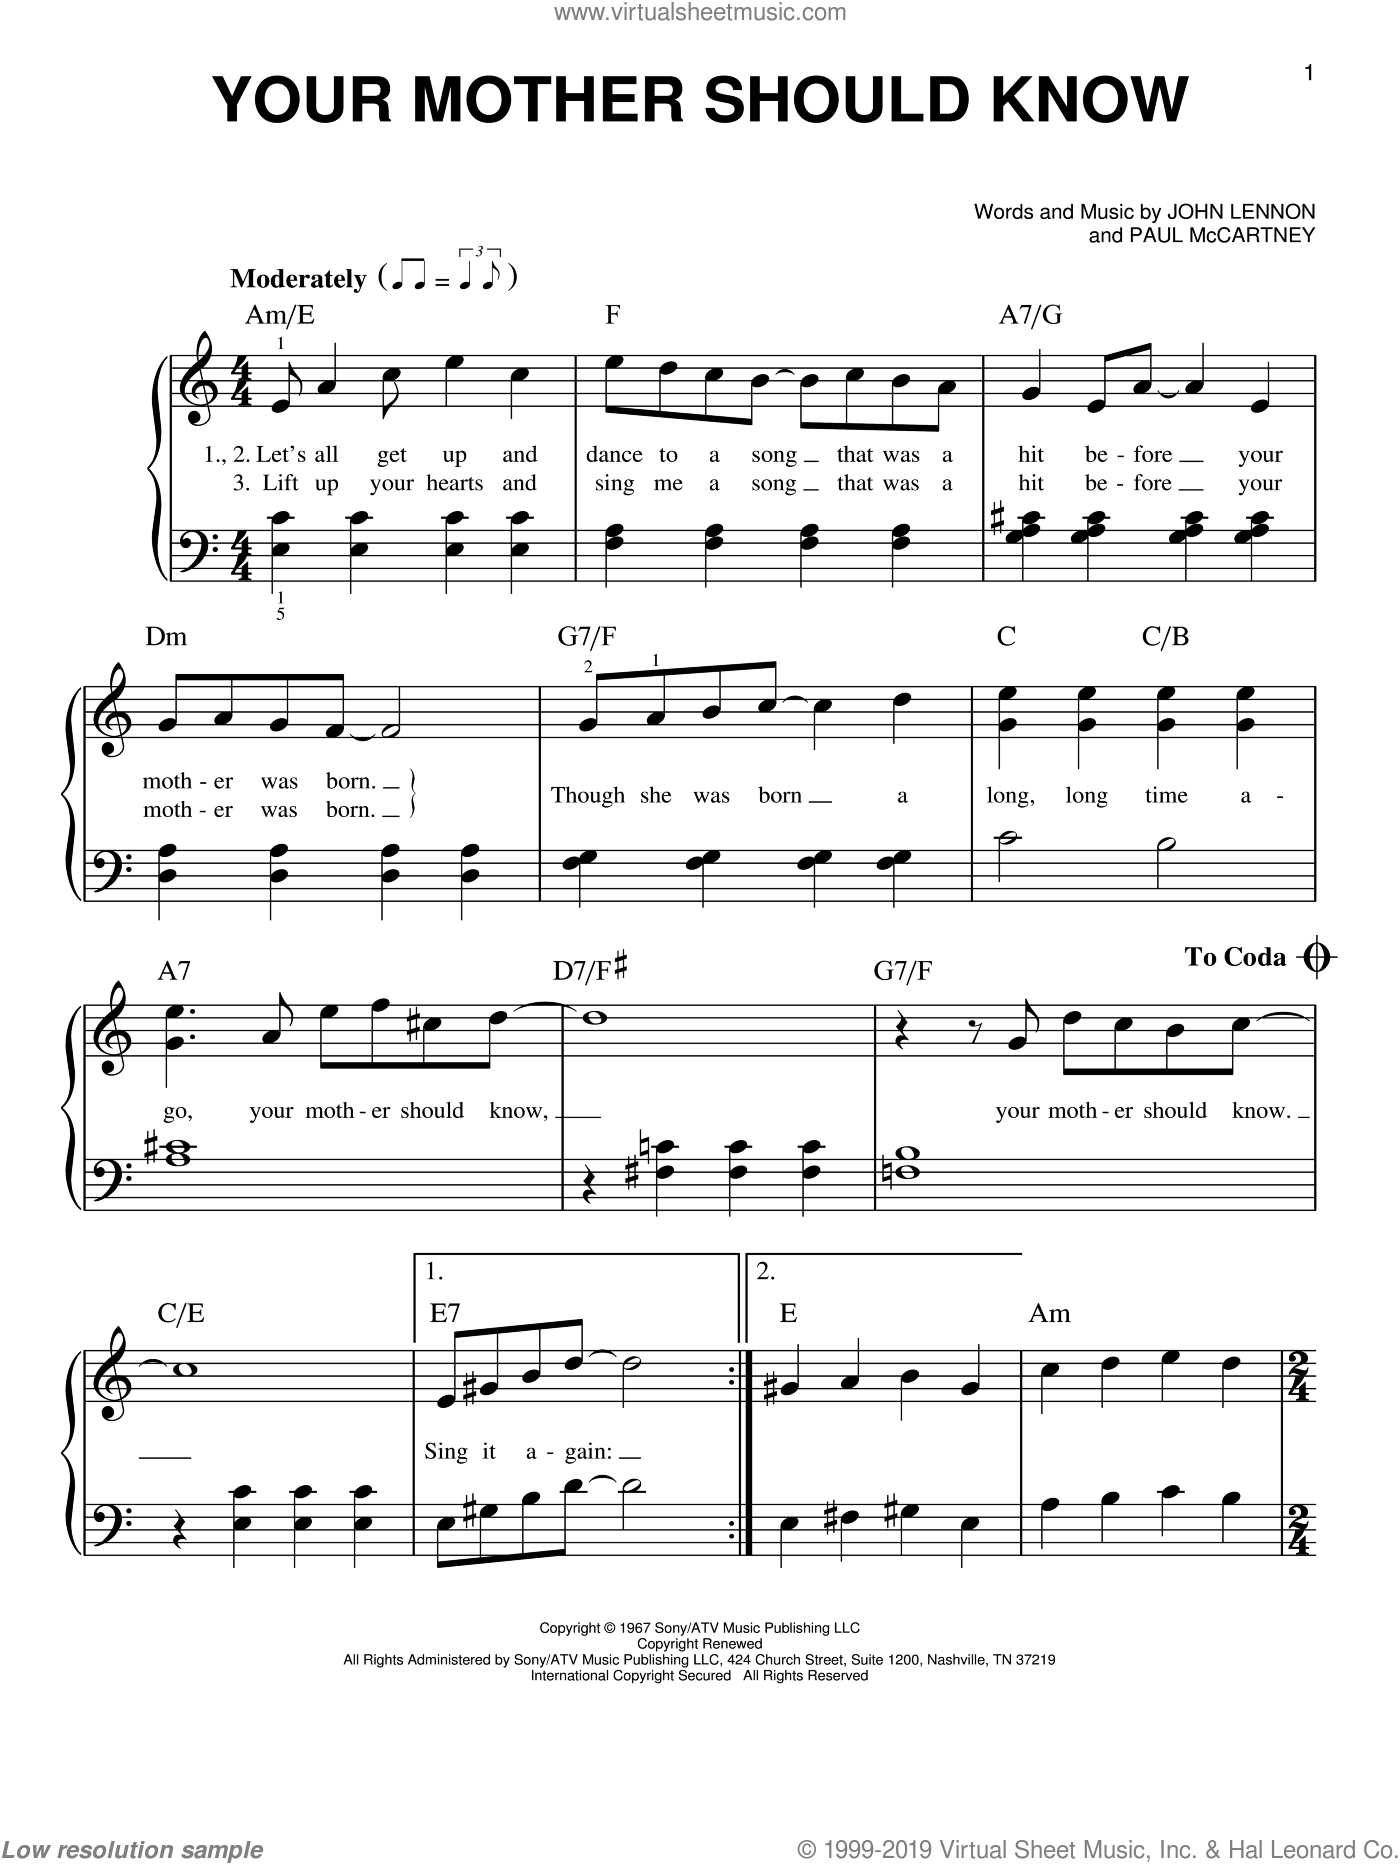 Your Mother Should Know sheet music for piano solo by The Beatles, John Lennon and Paul McCartney, easy. Score Image Preview.